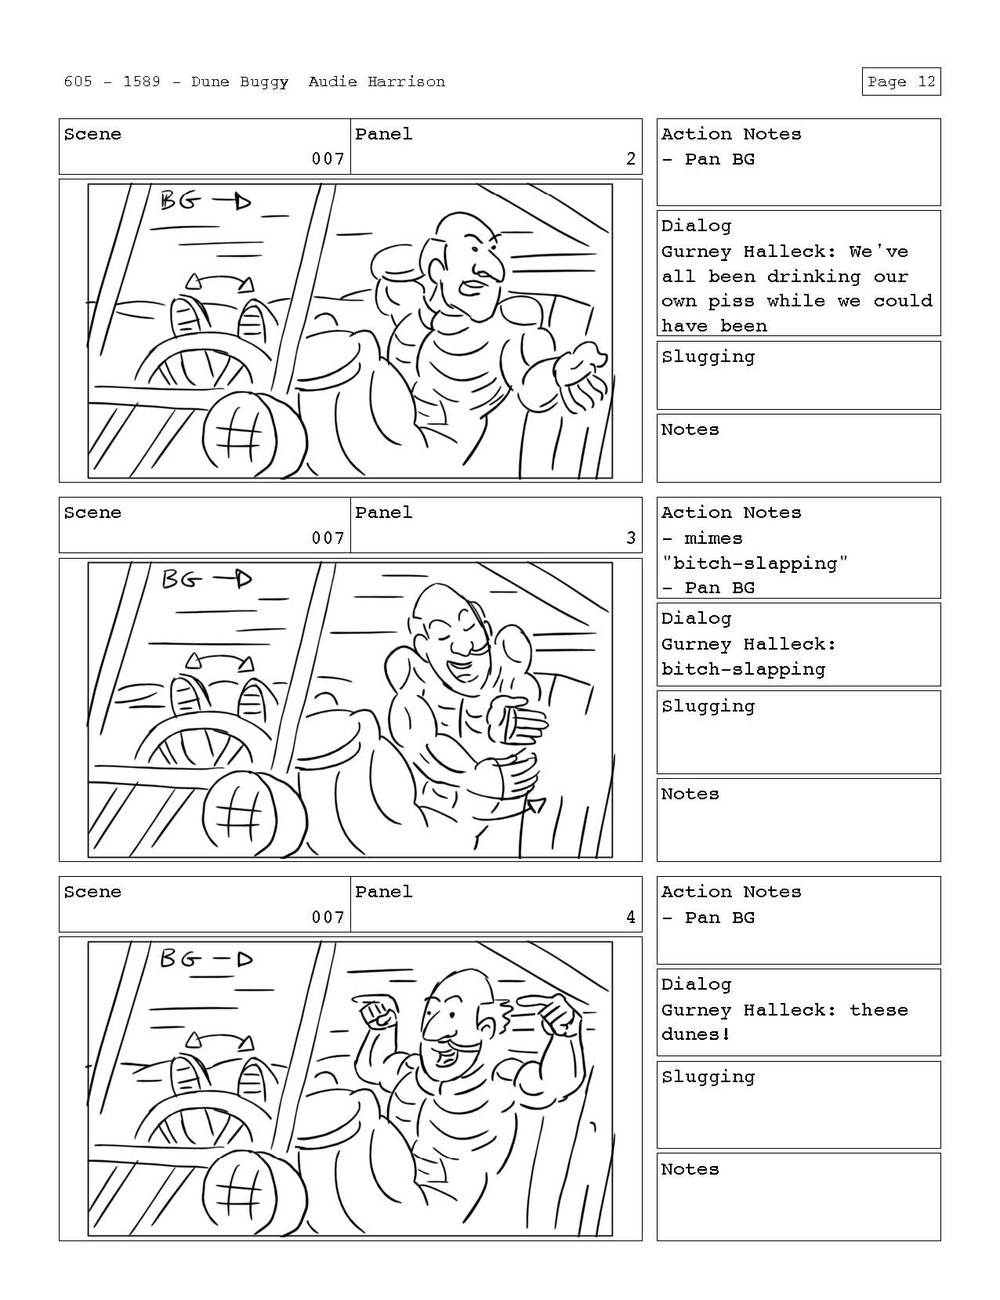 Dune_Buggy_Page_13.jpg